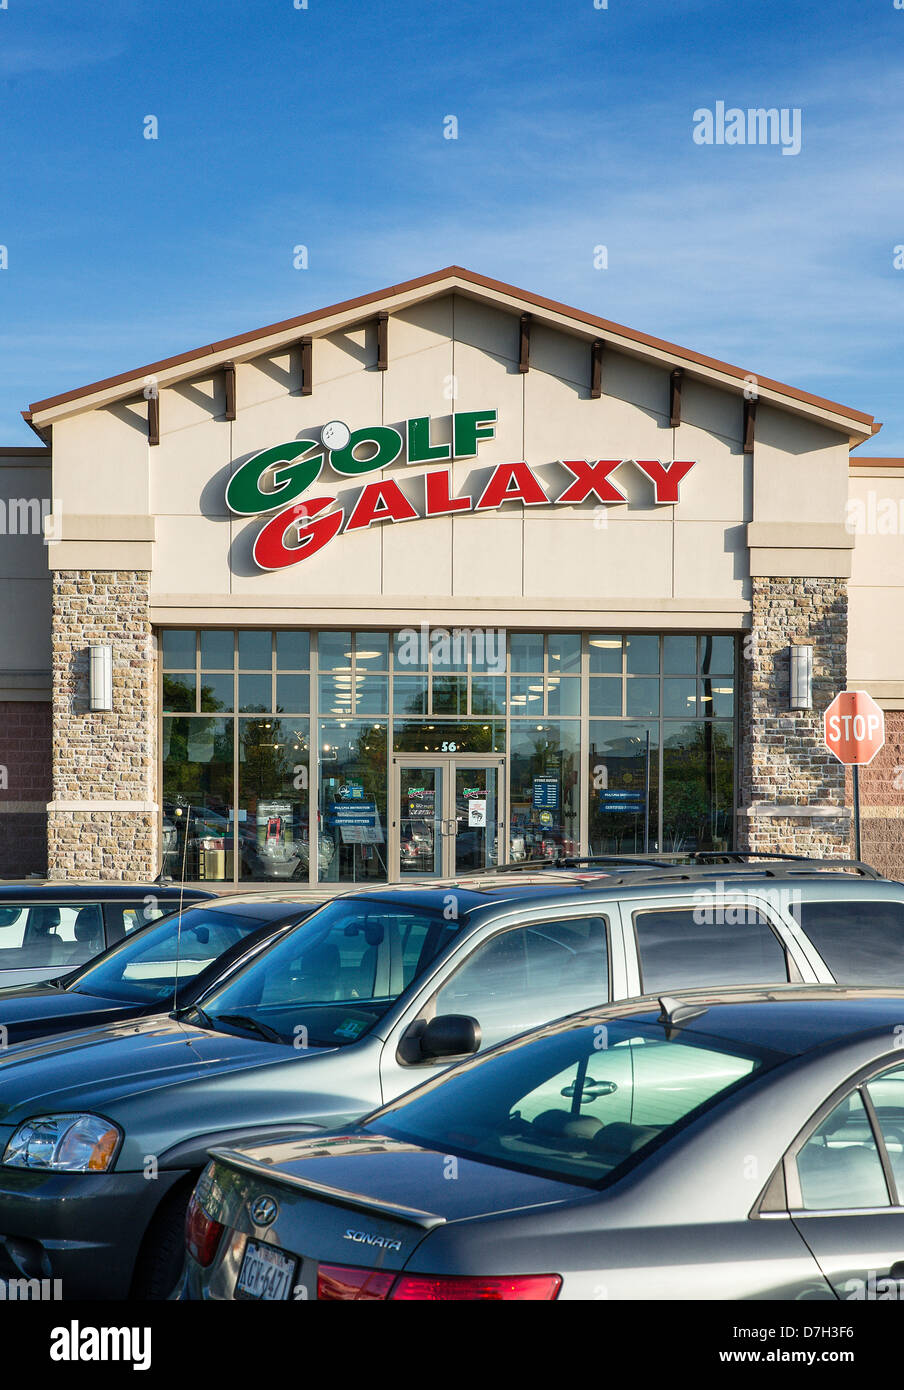 Golf Galaxy store, New Jersey, USA - Stock Image